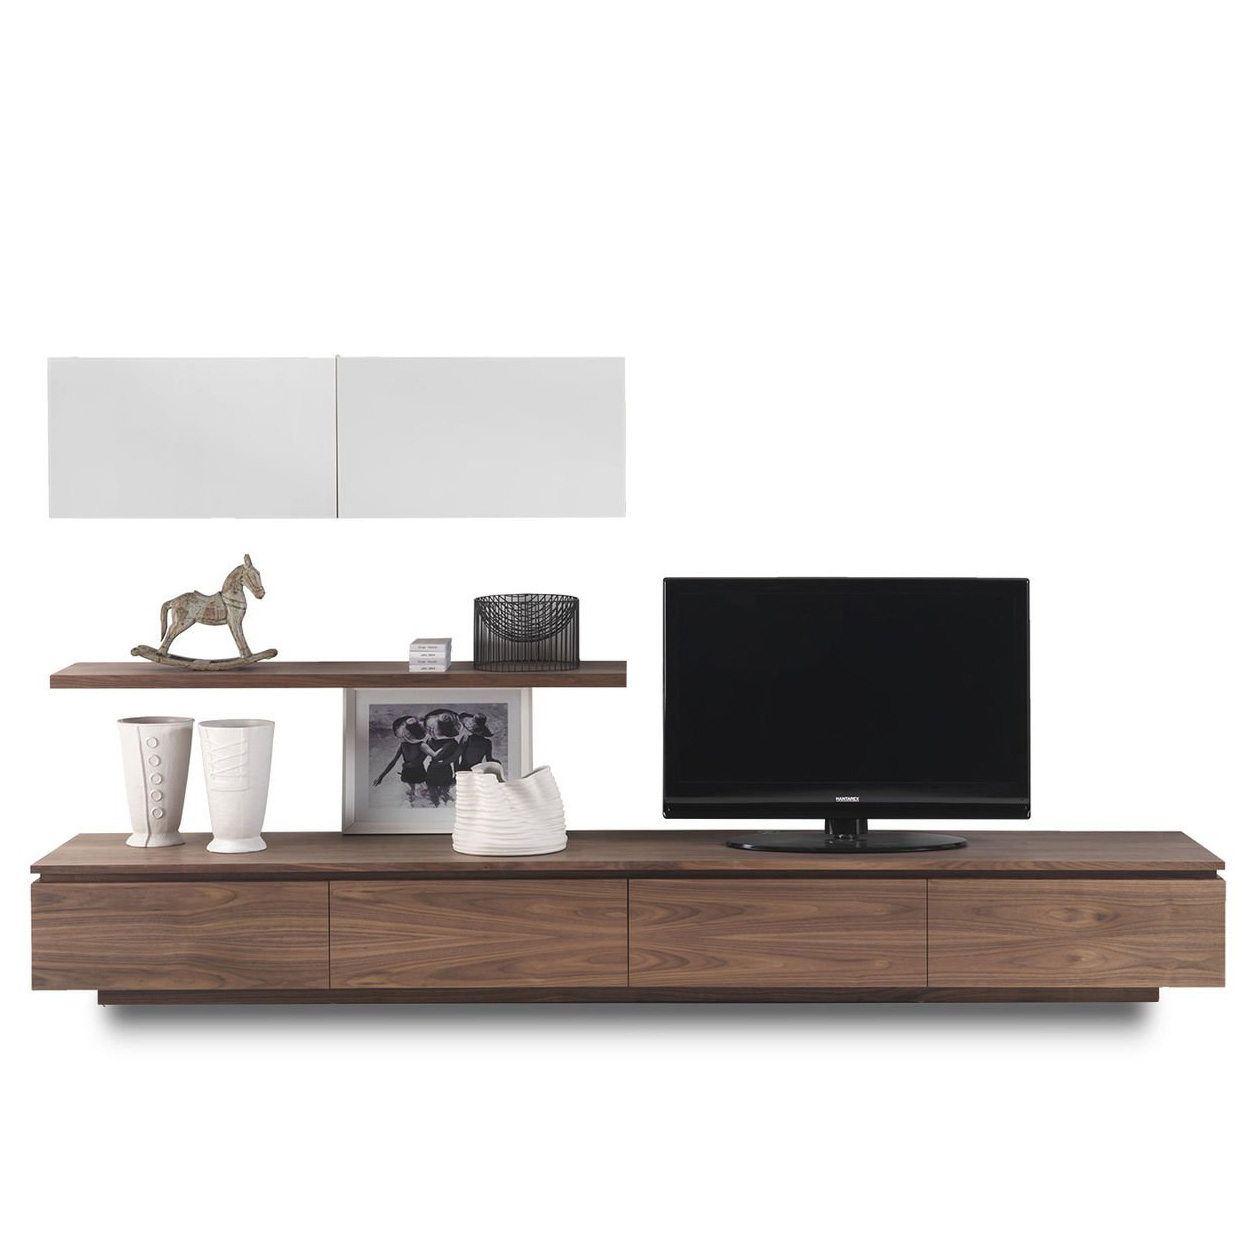 Sipario 2011 tv unit from Riva 1920